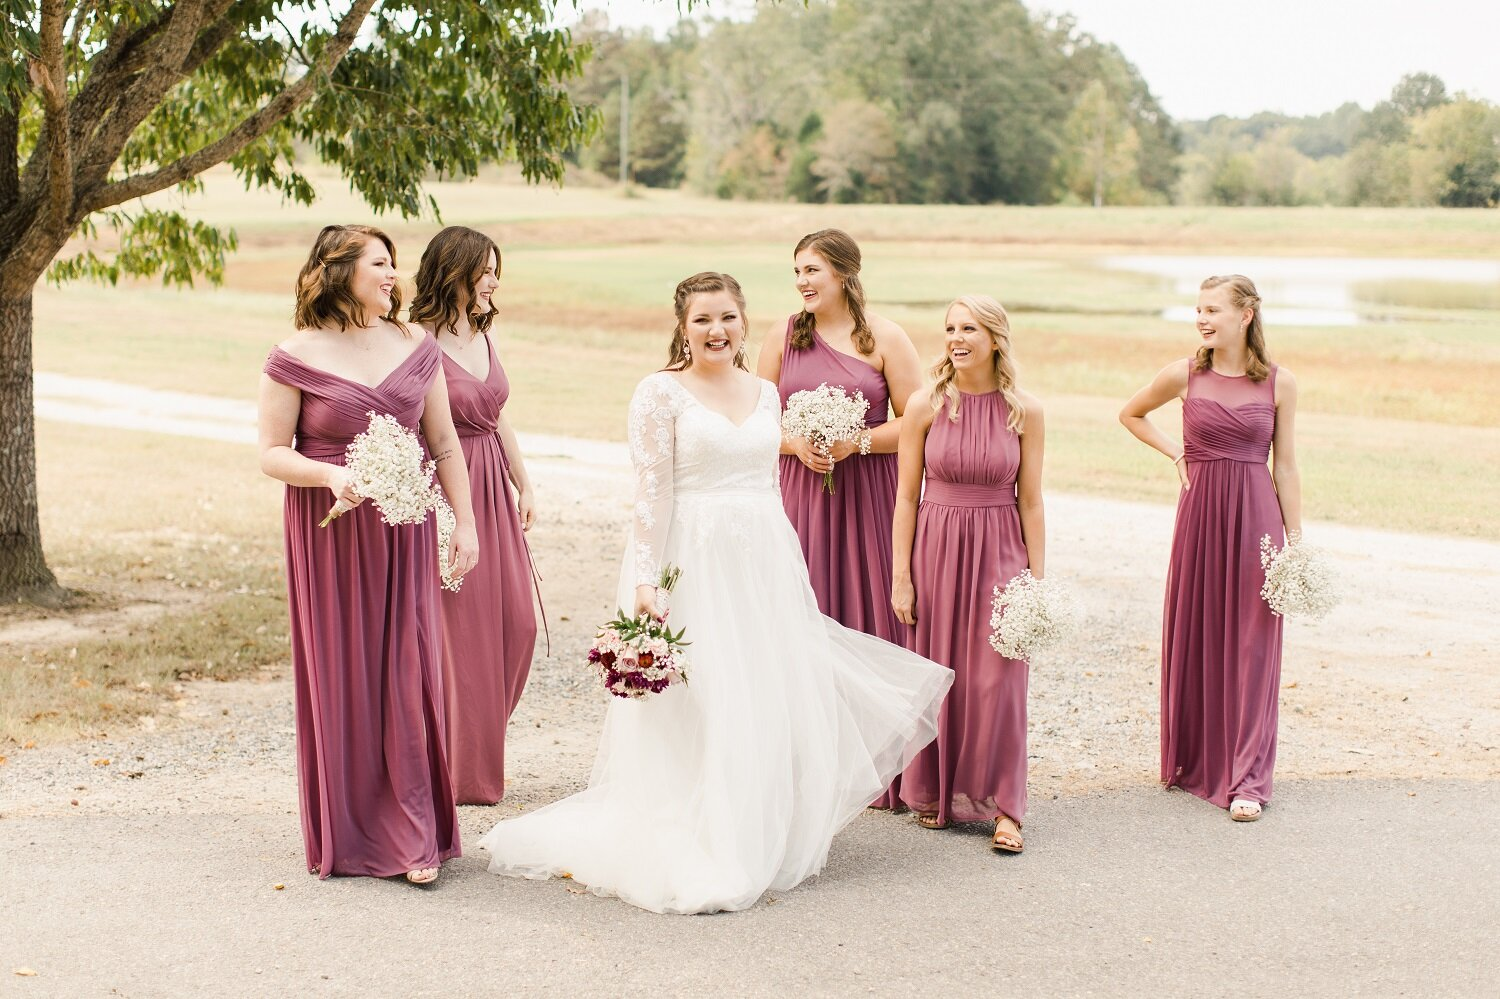 Hemphill Wedding - Shea's Favorites_-62.jpg